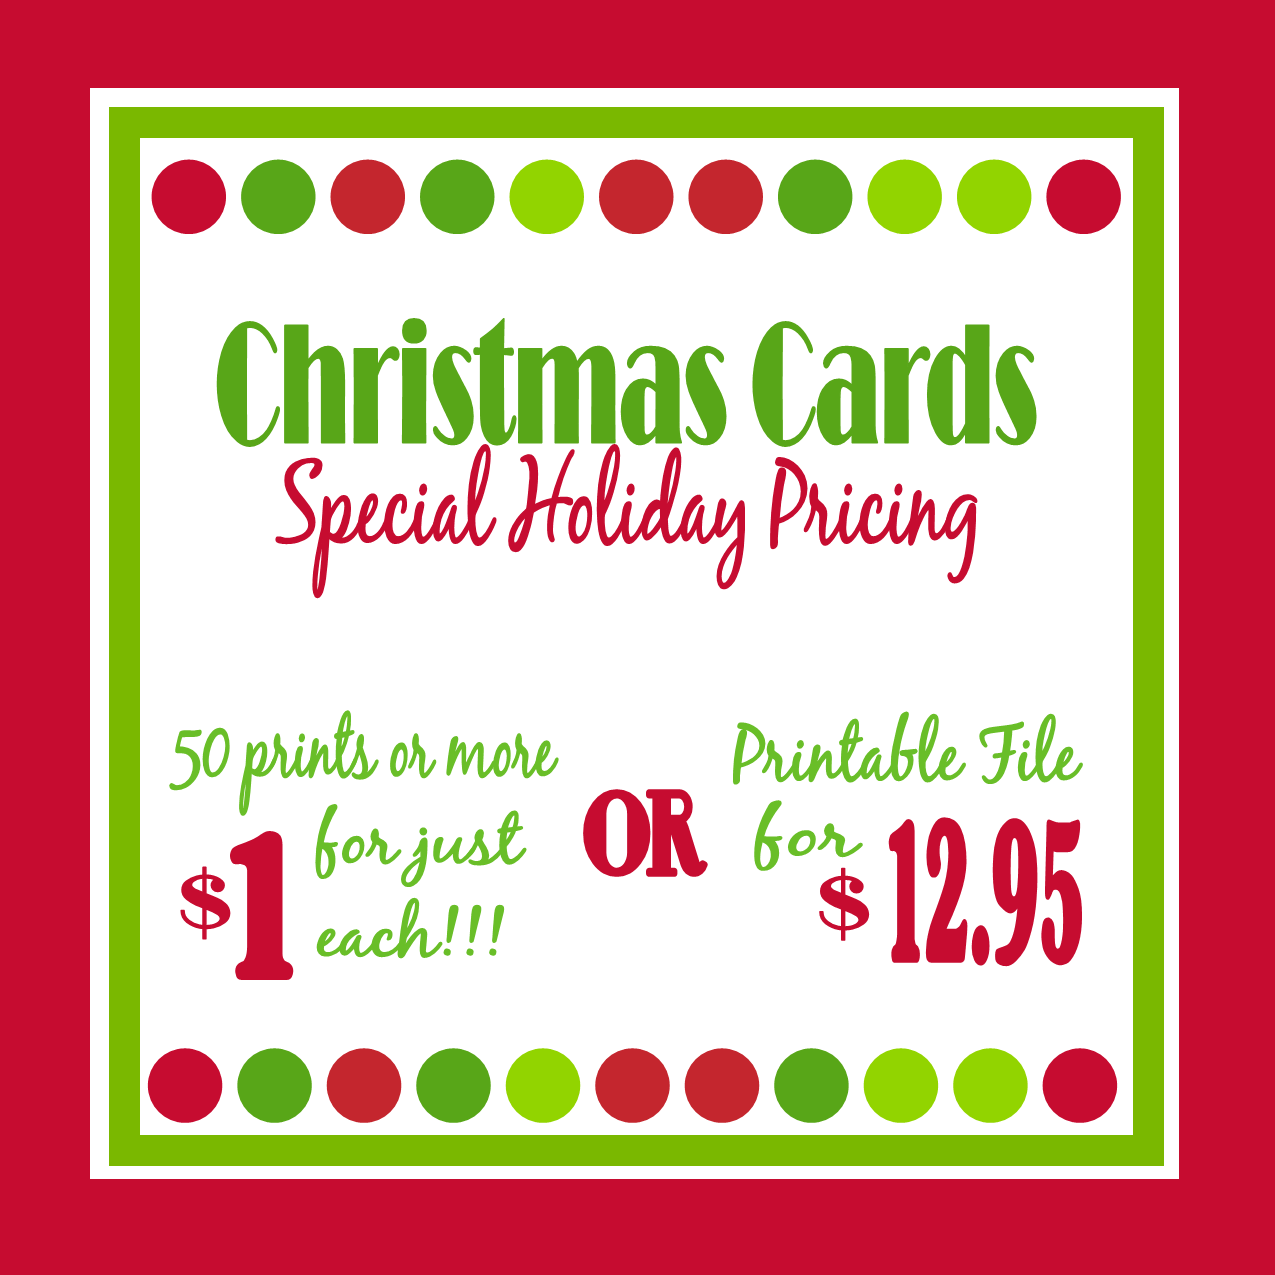 SPECIAL Christmas Card Pricing - Sweet Peach Paperie